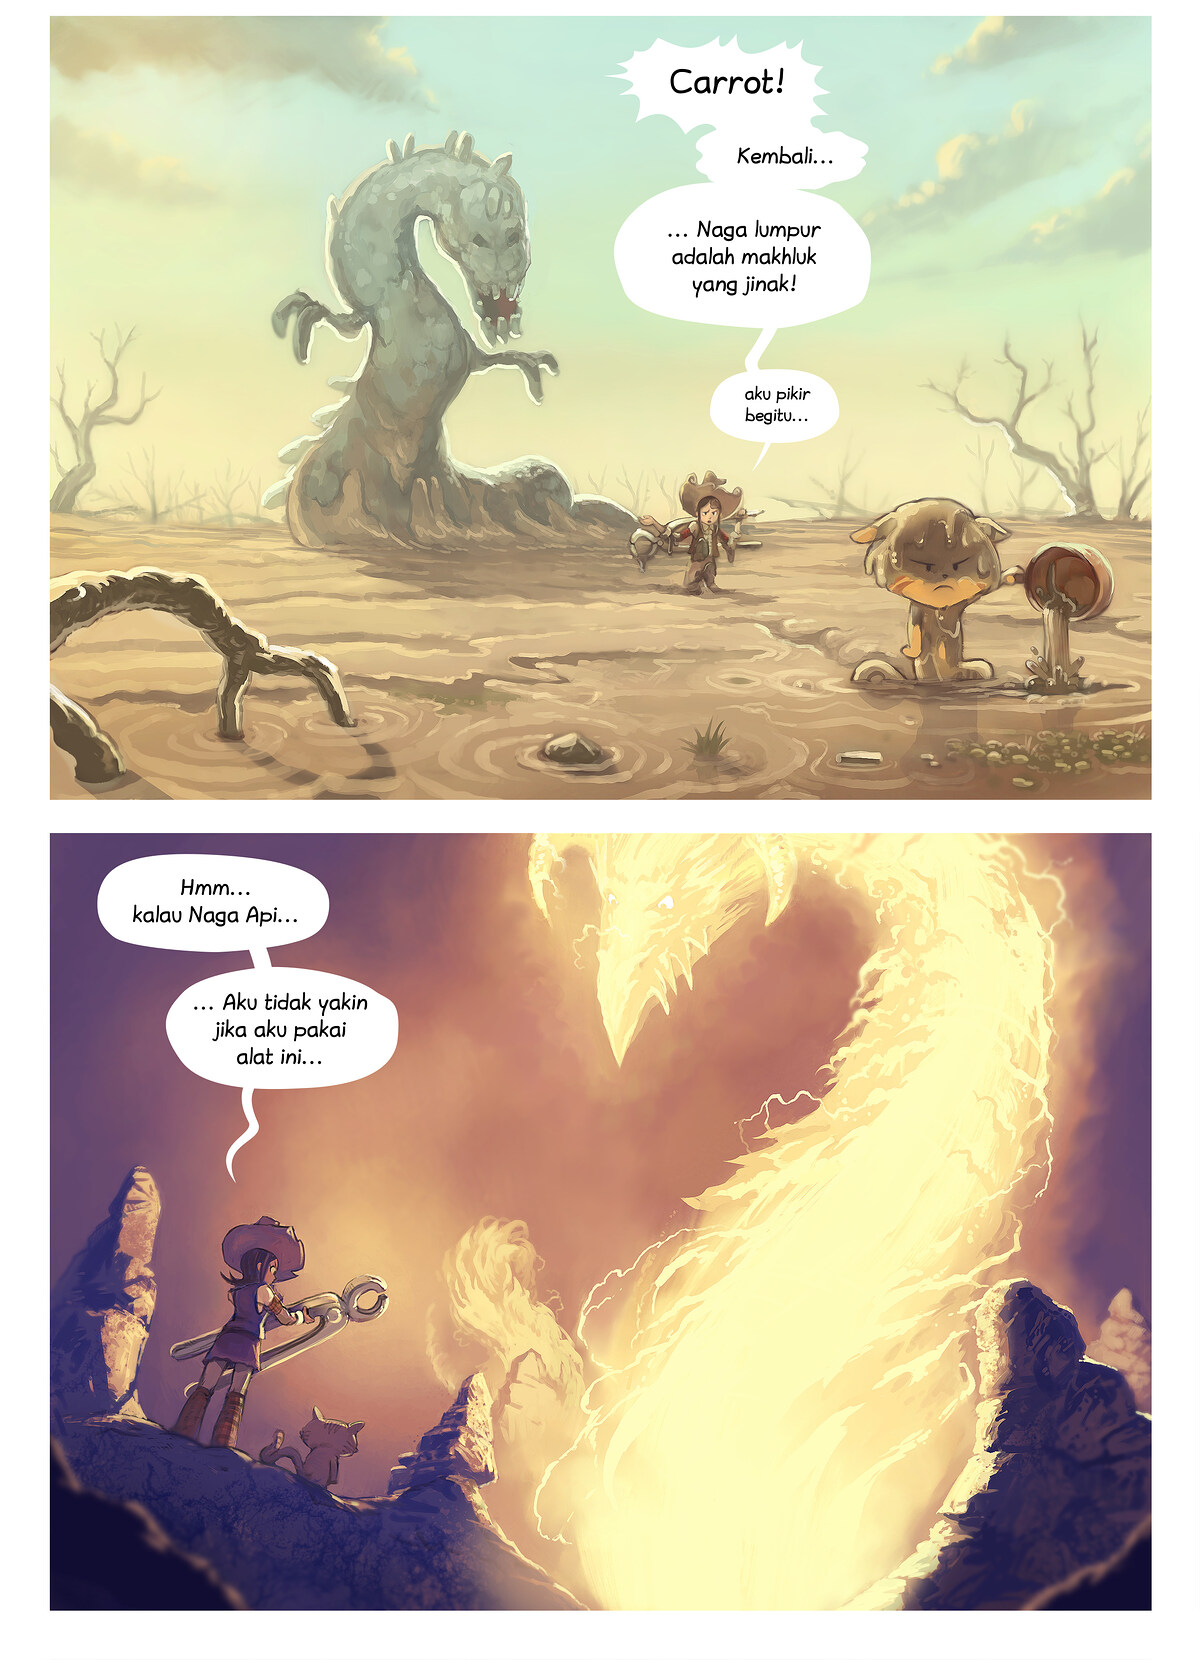 A webcomic page of Pepper&Carrot, episode 14 [id], halaman 4